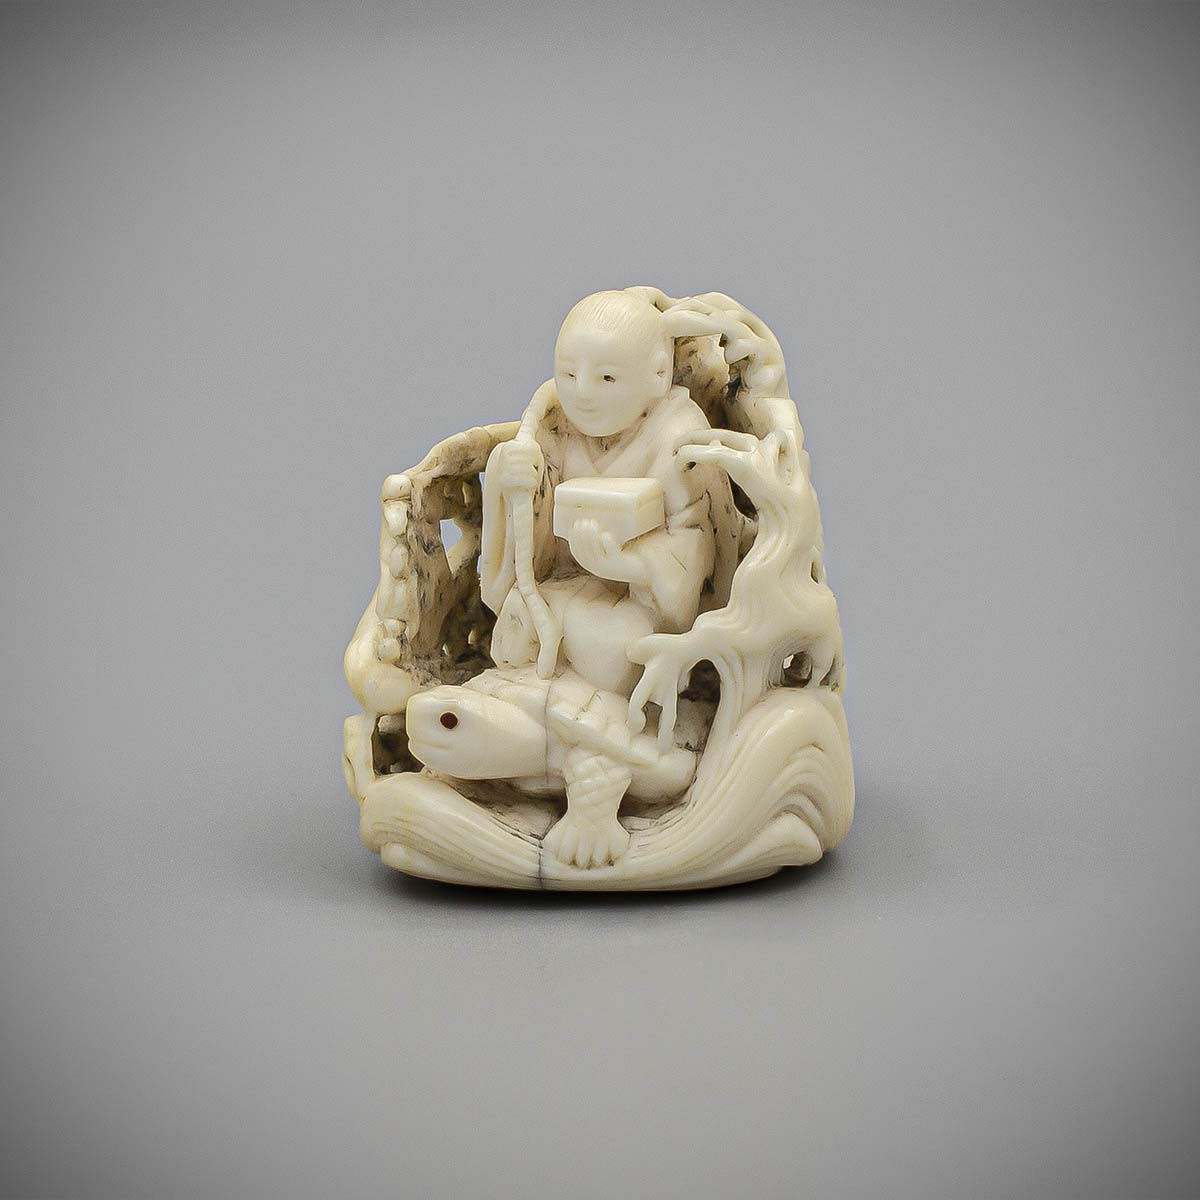 MR3682_v.1-2, Ivory netsuke of Urashima Taro by Kagetoshi